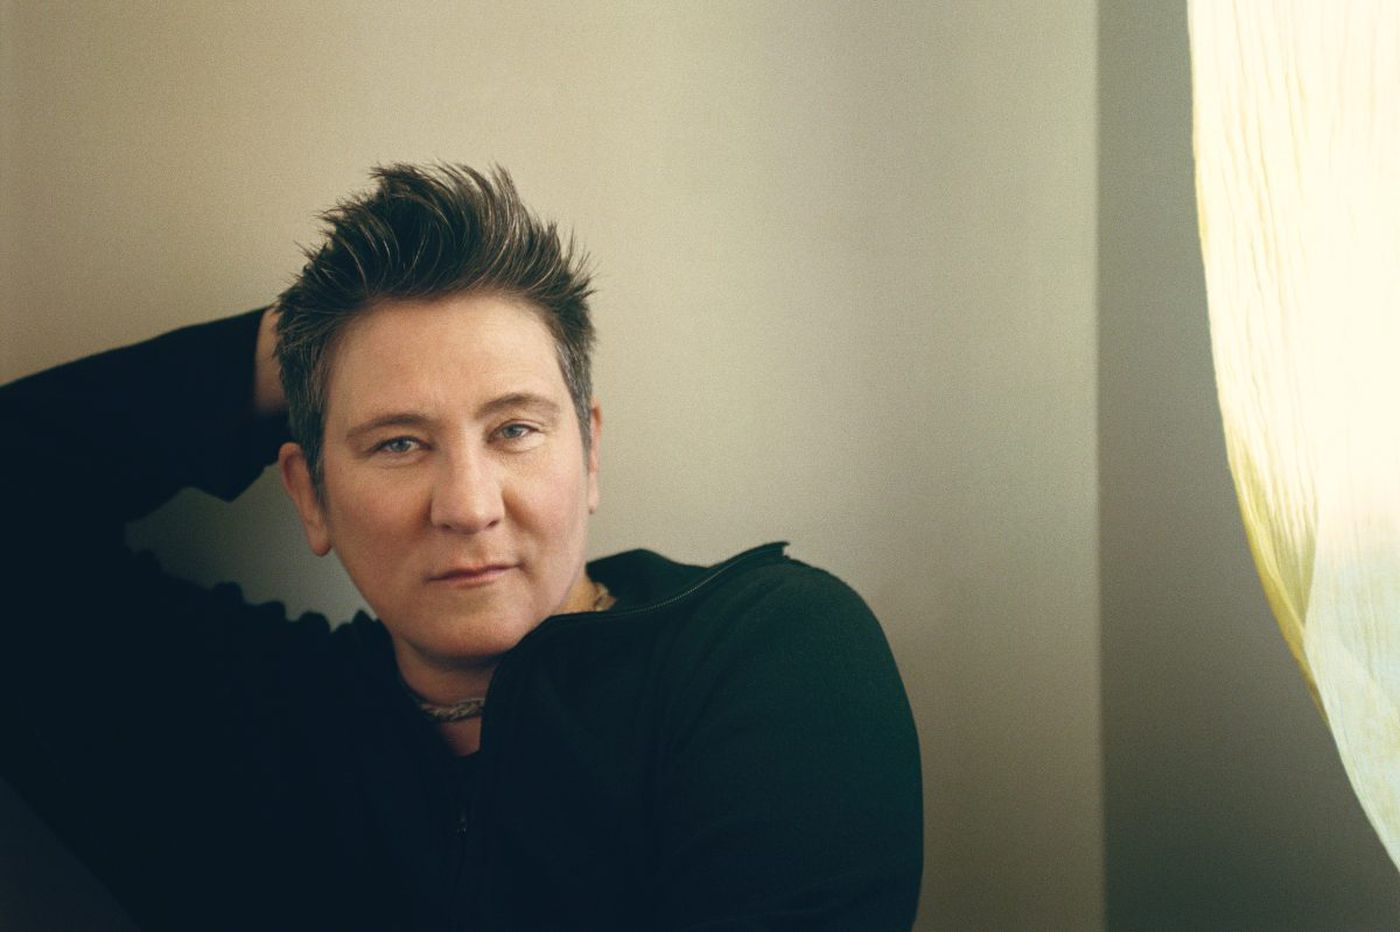 How k.d. lang perfectly captured the uncertainty of my post-collegiate life   Perspective